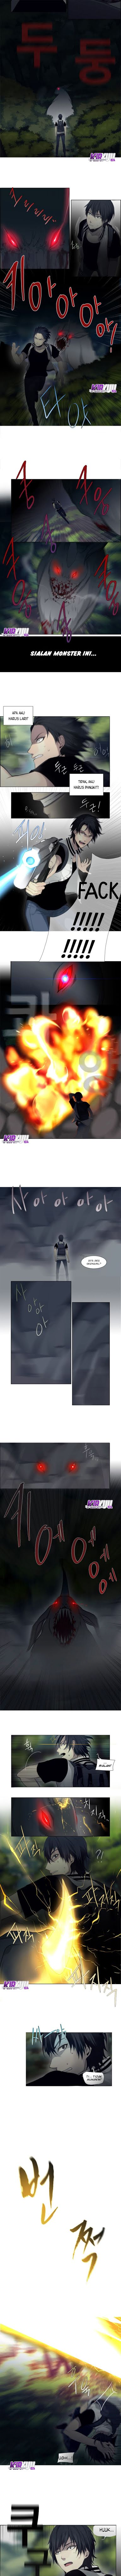 Gong Heon Ja: Chapter 05 - Page 6